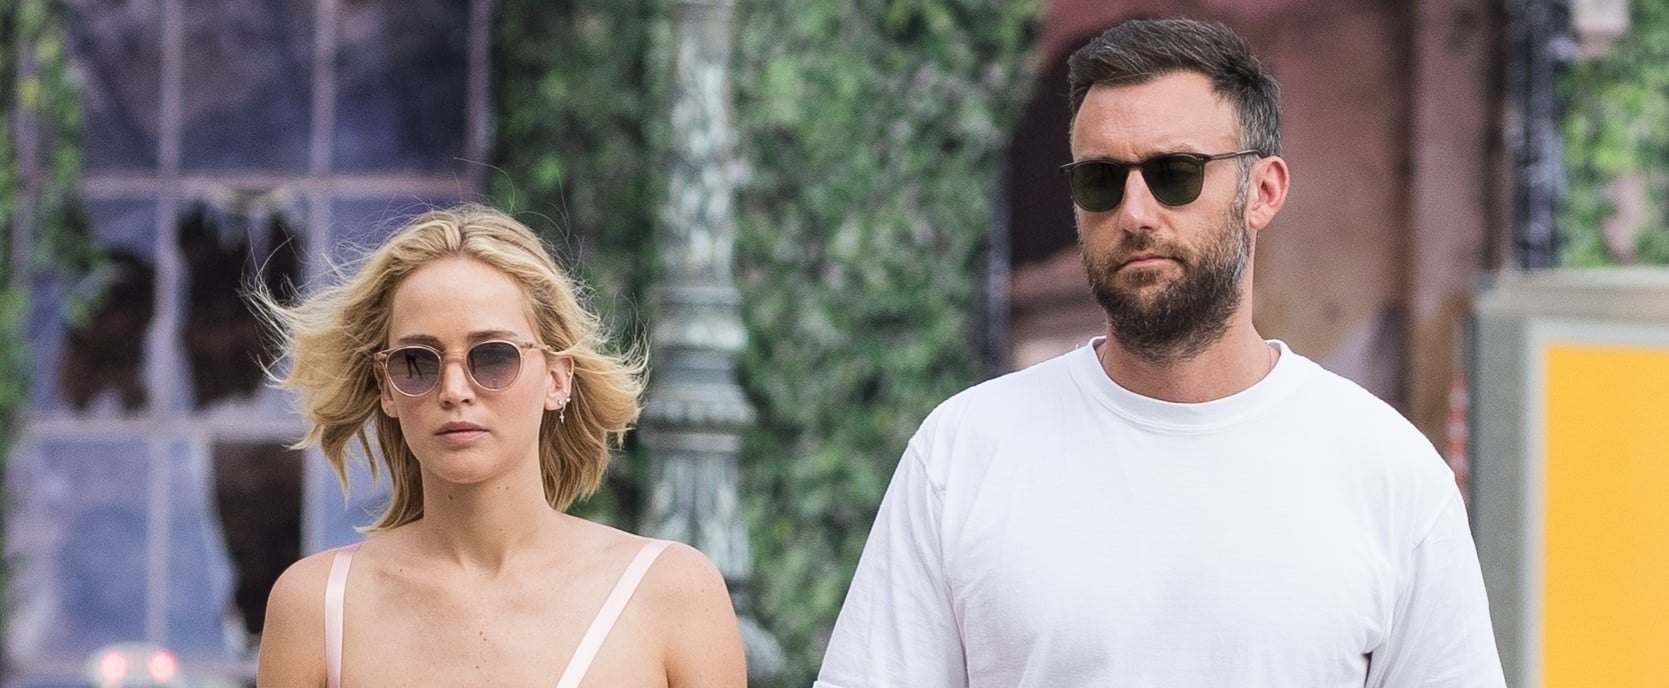 Jennifer Lawrence and Cooke Maroney's Wedding Details